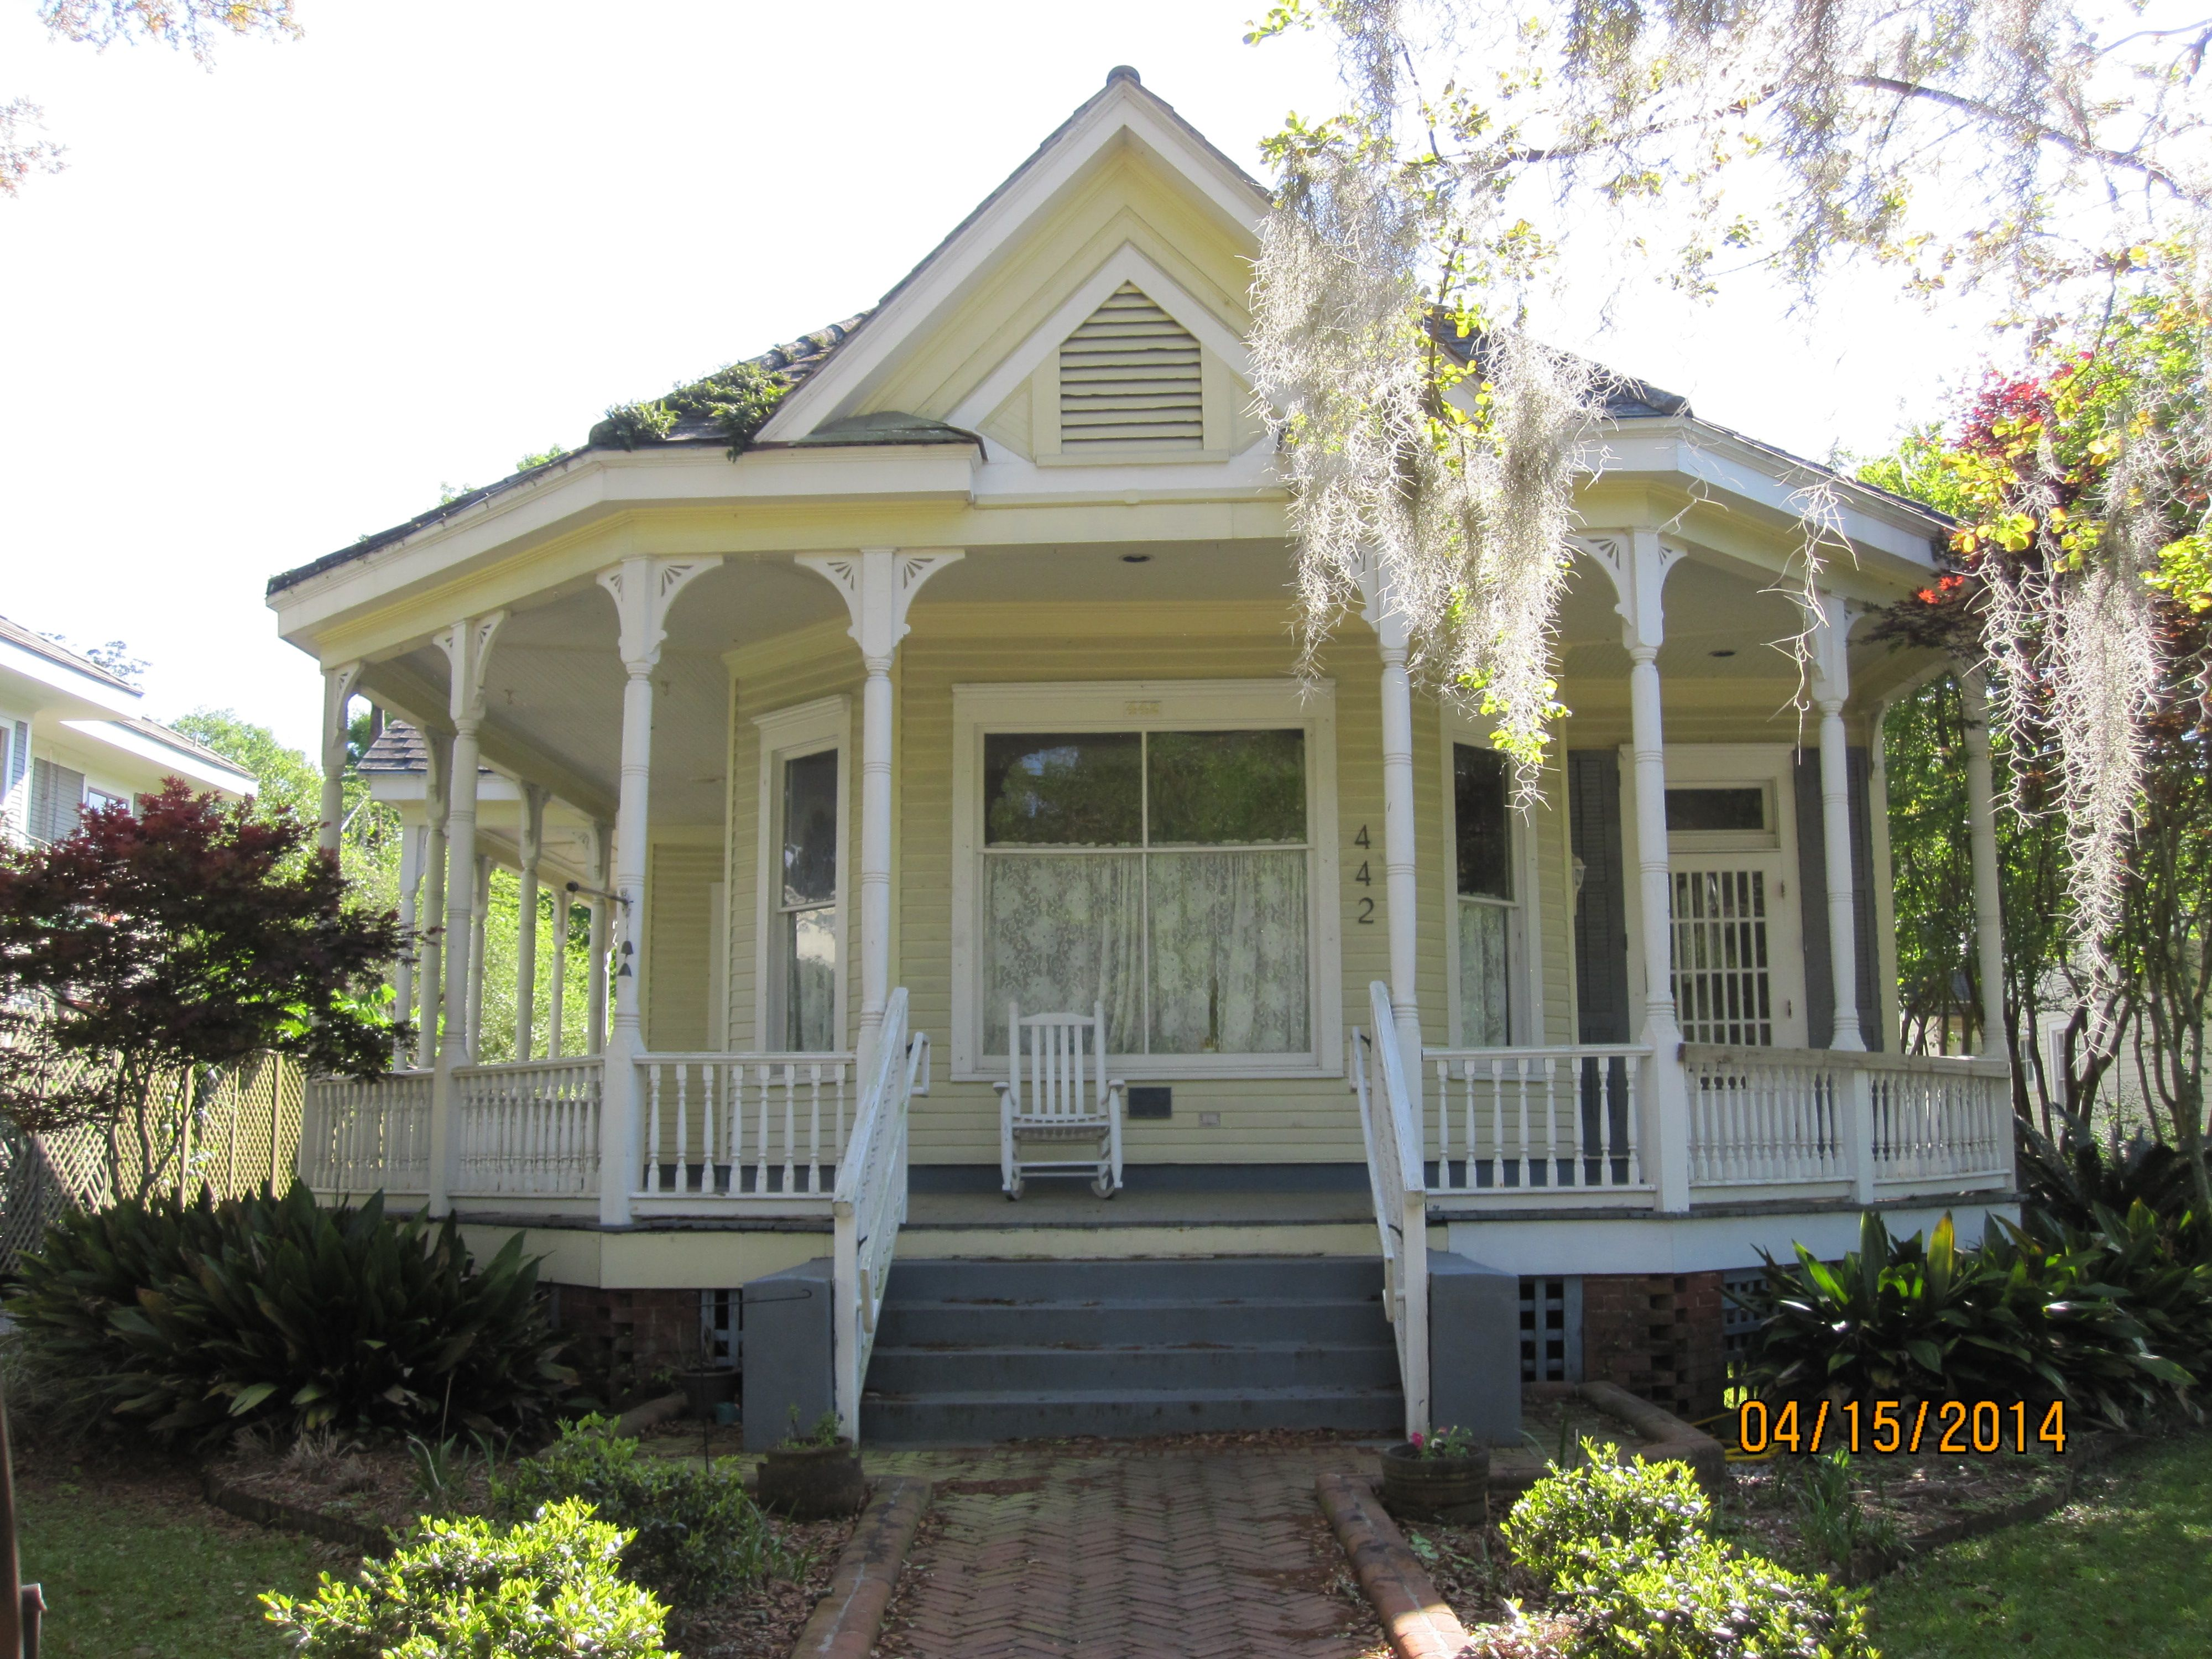 New Iberia Louisiana This Little House In On The Main